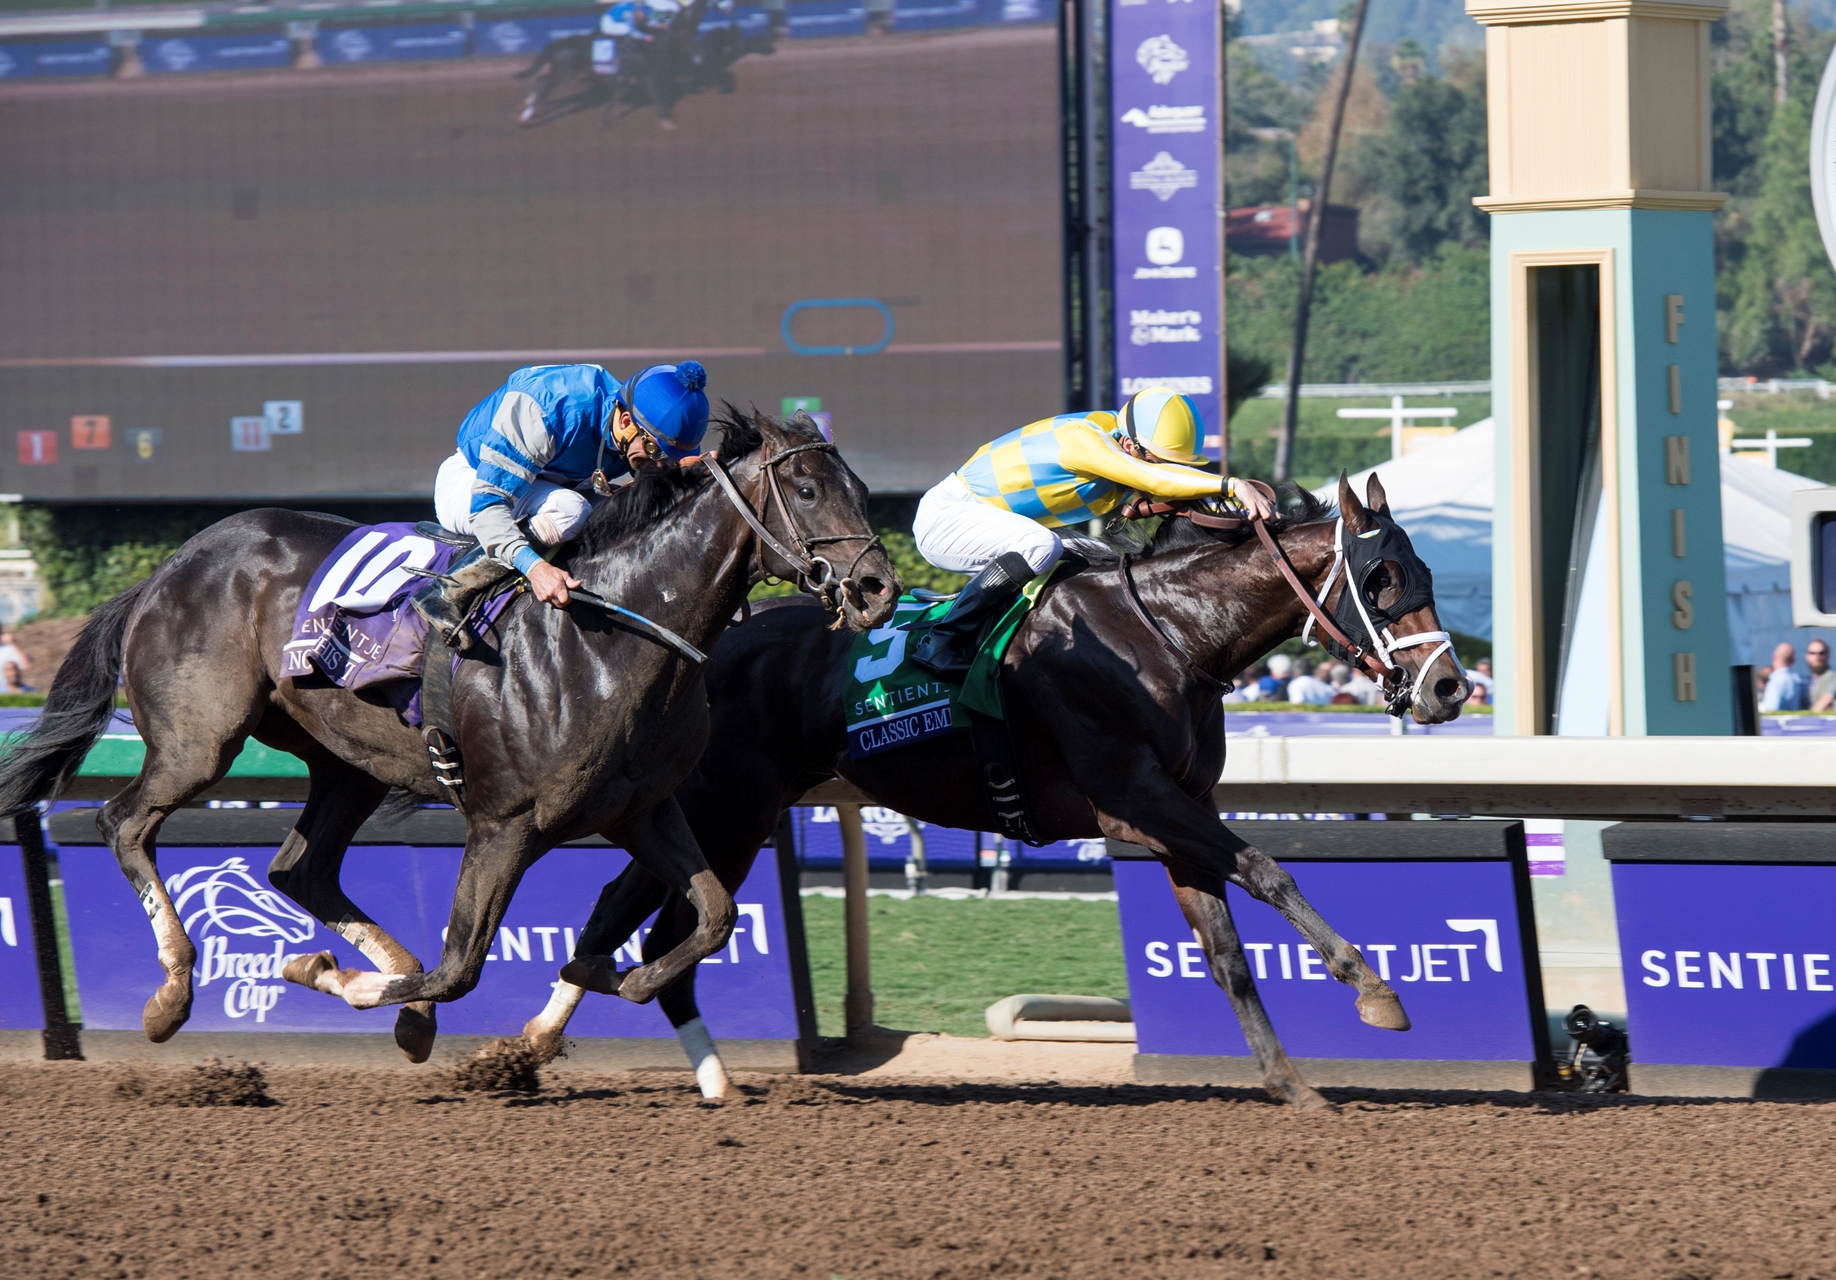 Baffert and Garcia end separation with BC win